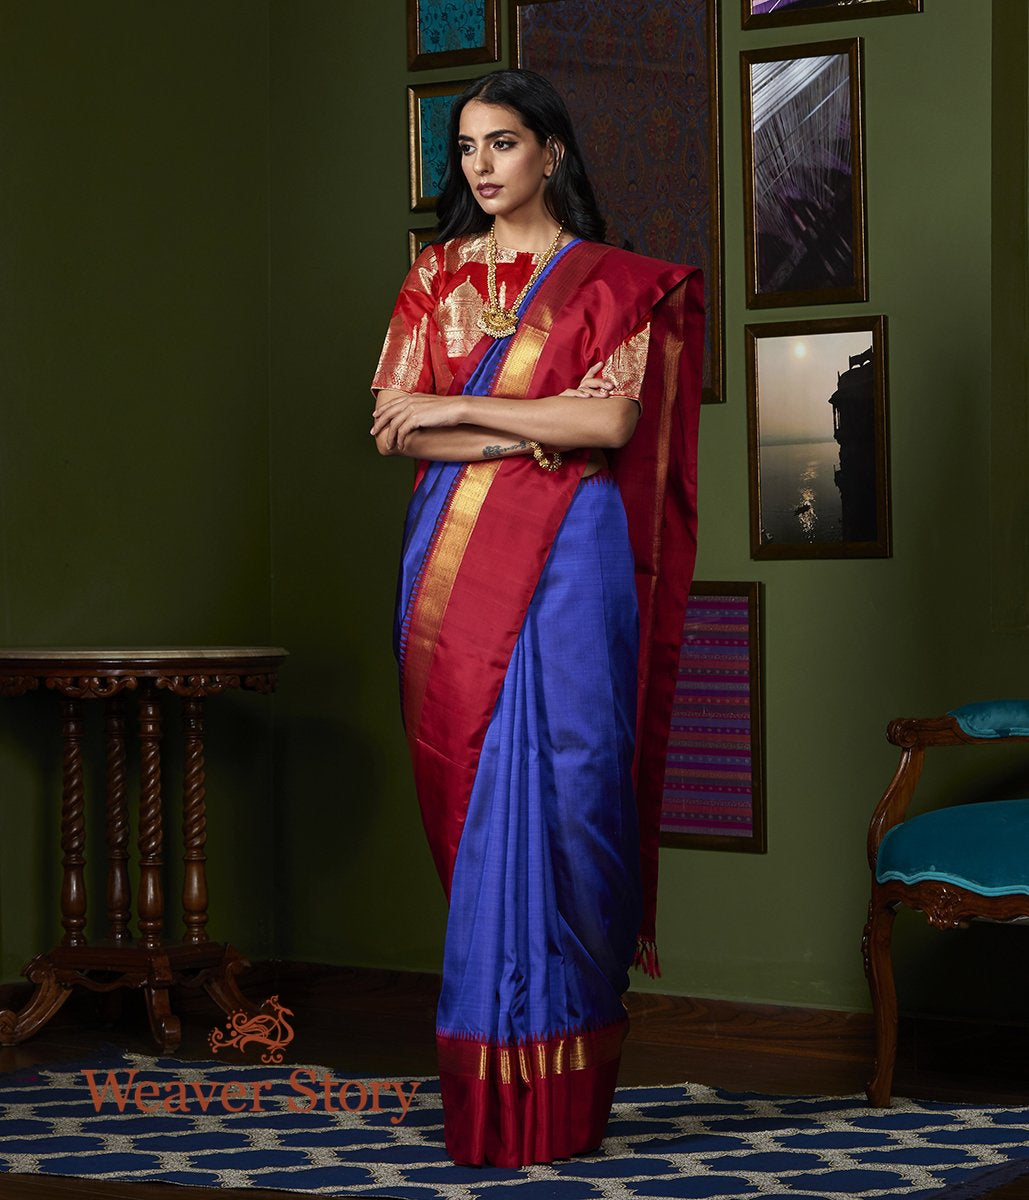 Handwoven Blue and Black Dual Tone Kanjivaram Silk Saree with Red Border